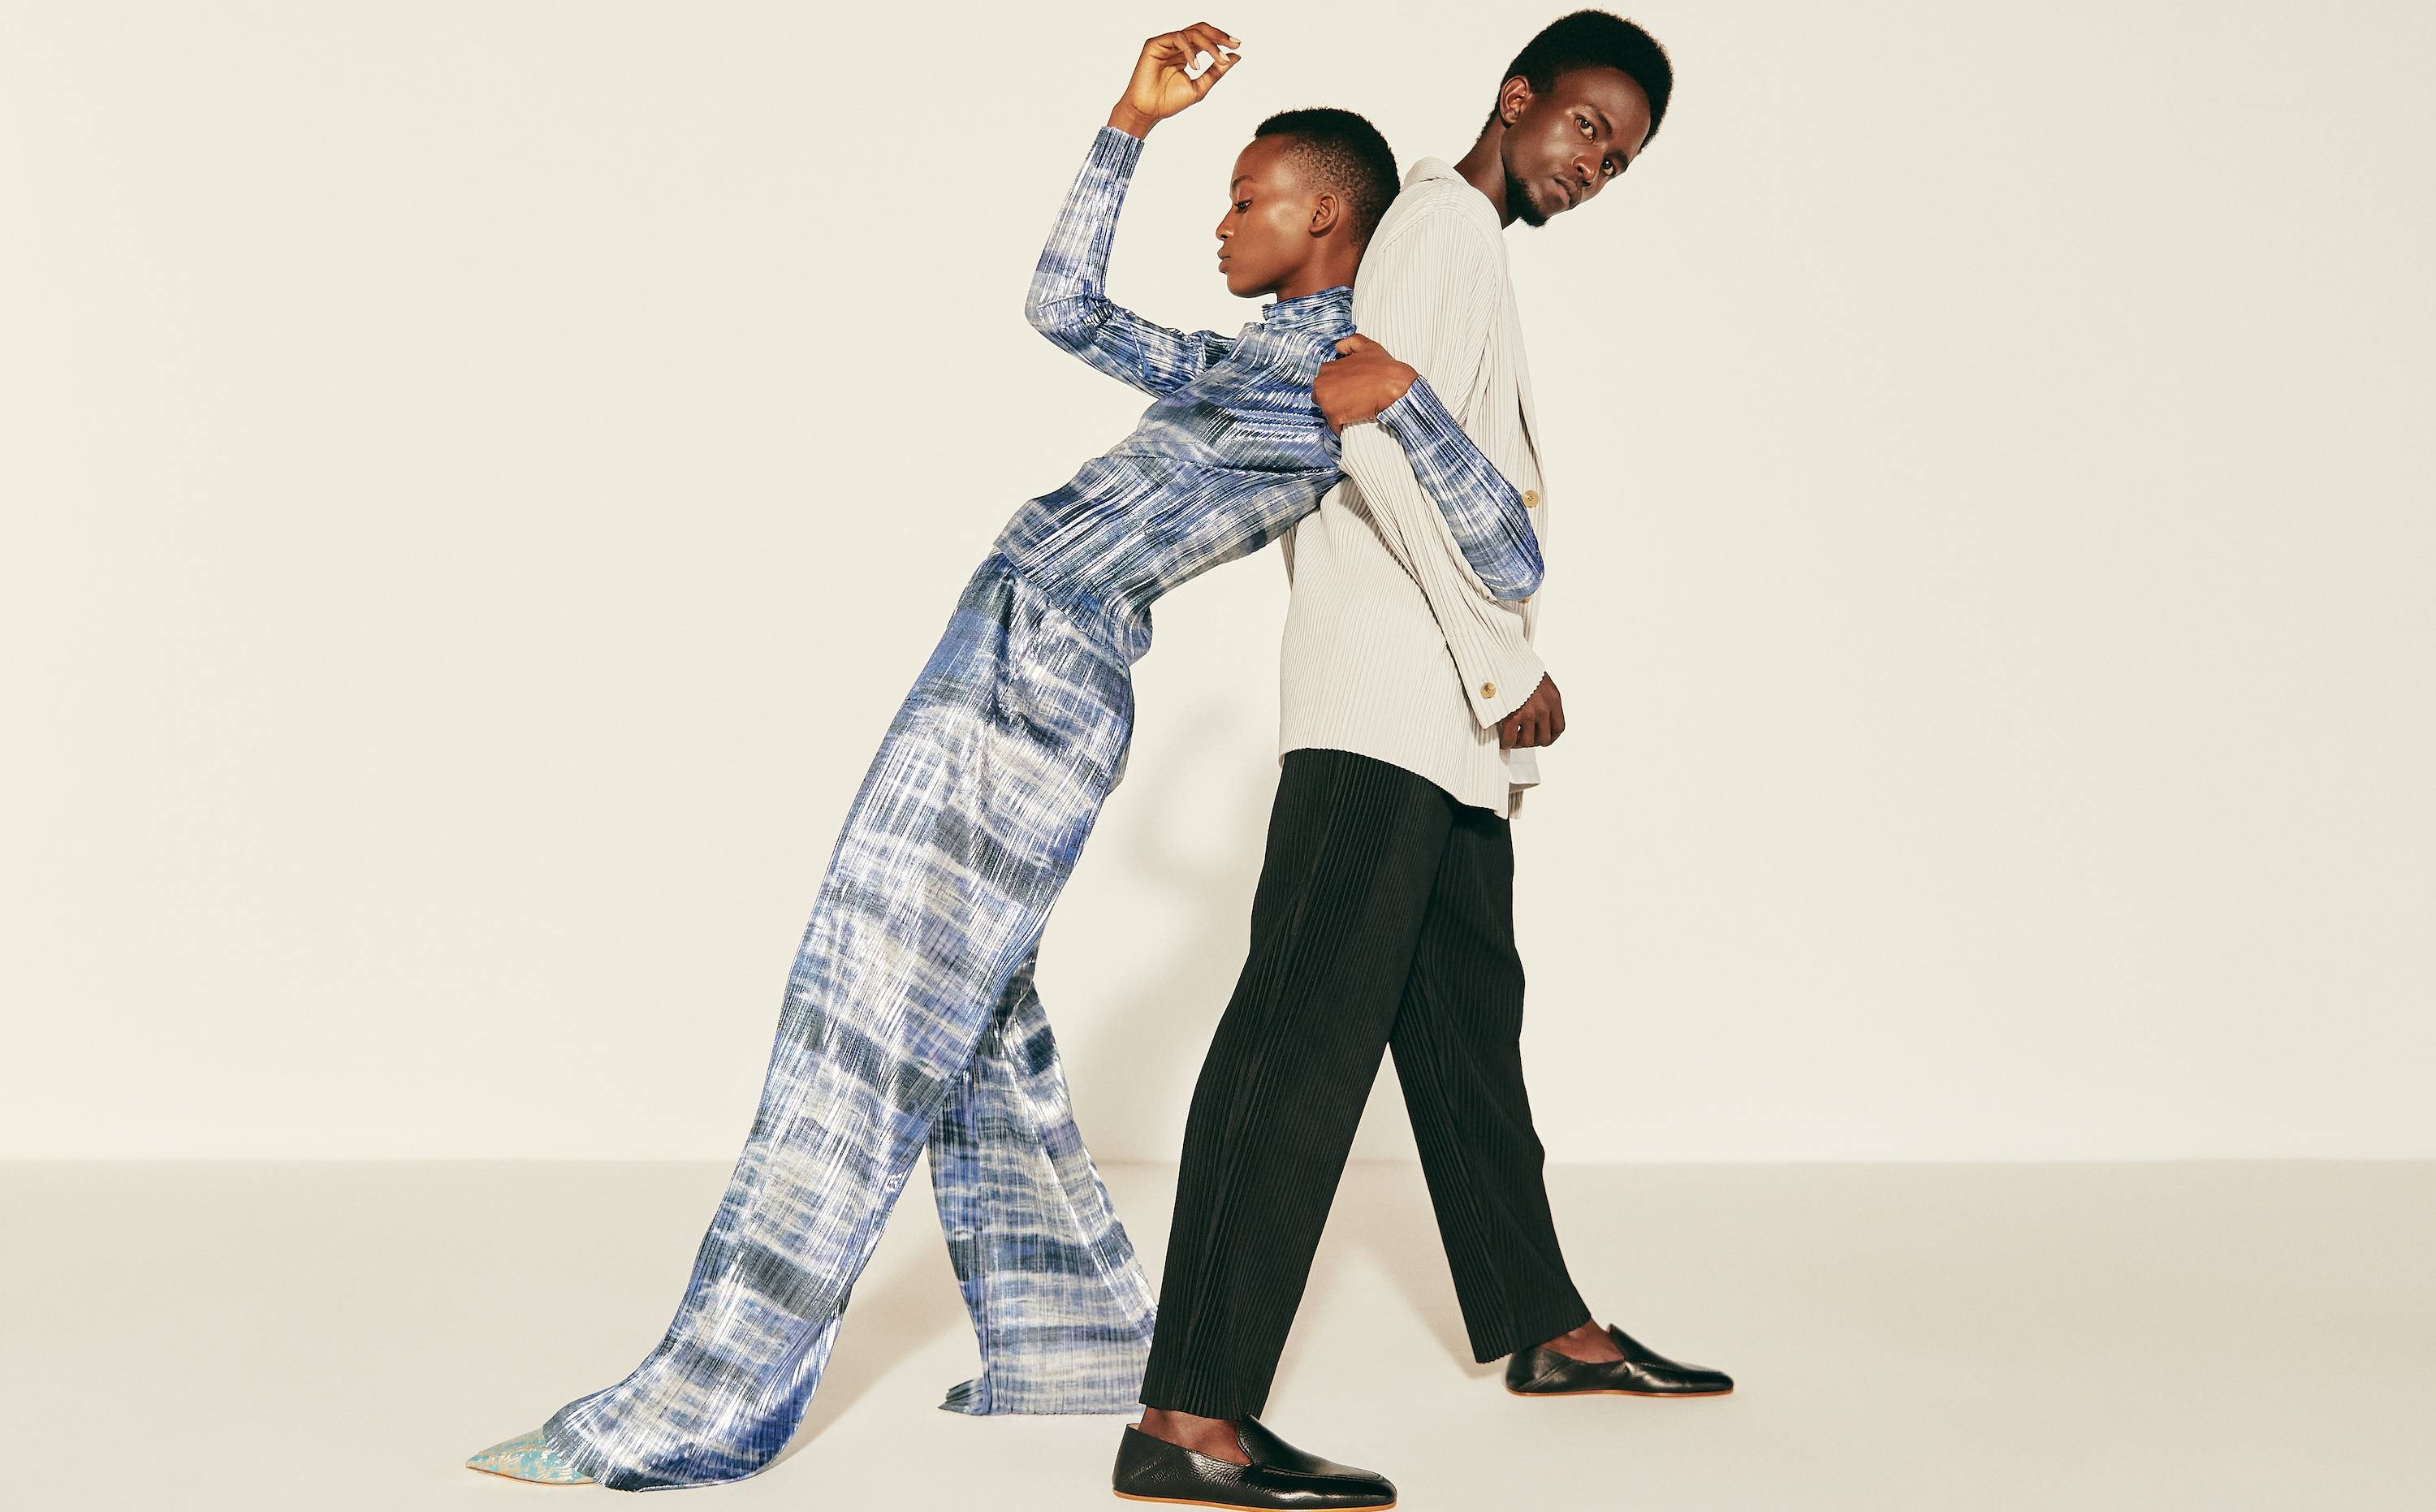 Farfetch unveils Ramadan capsule collection with 30 designers